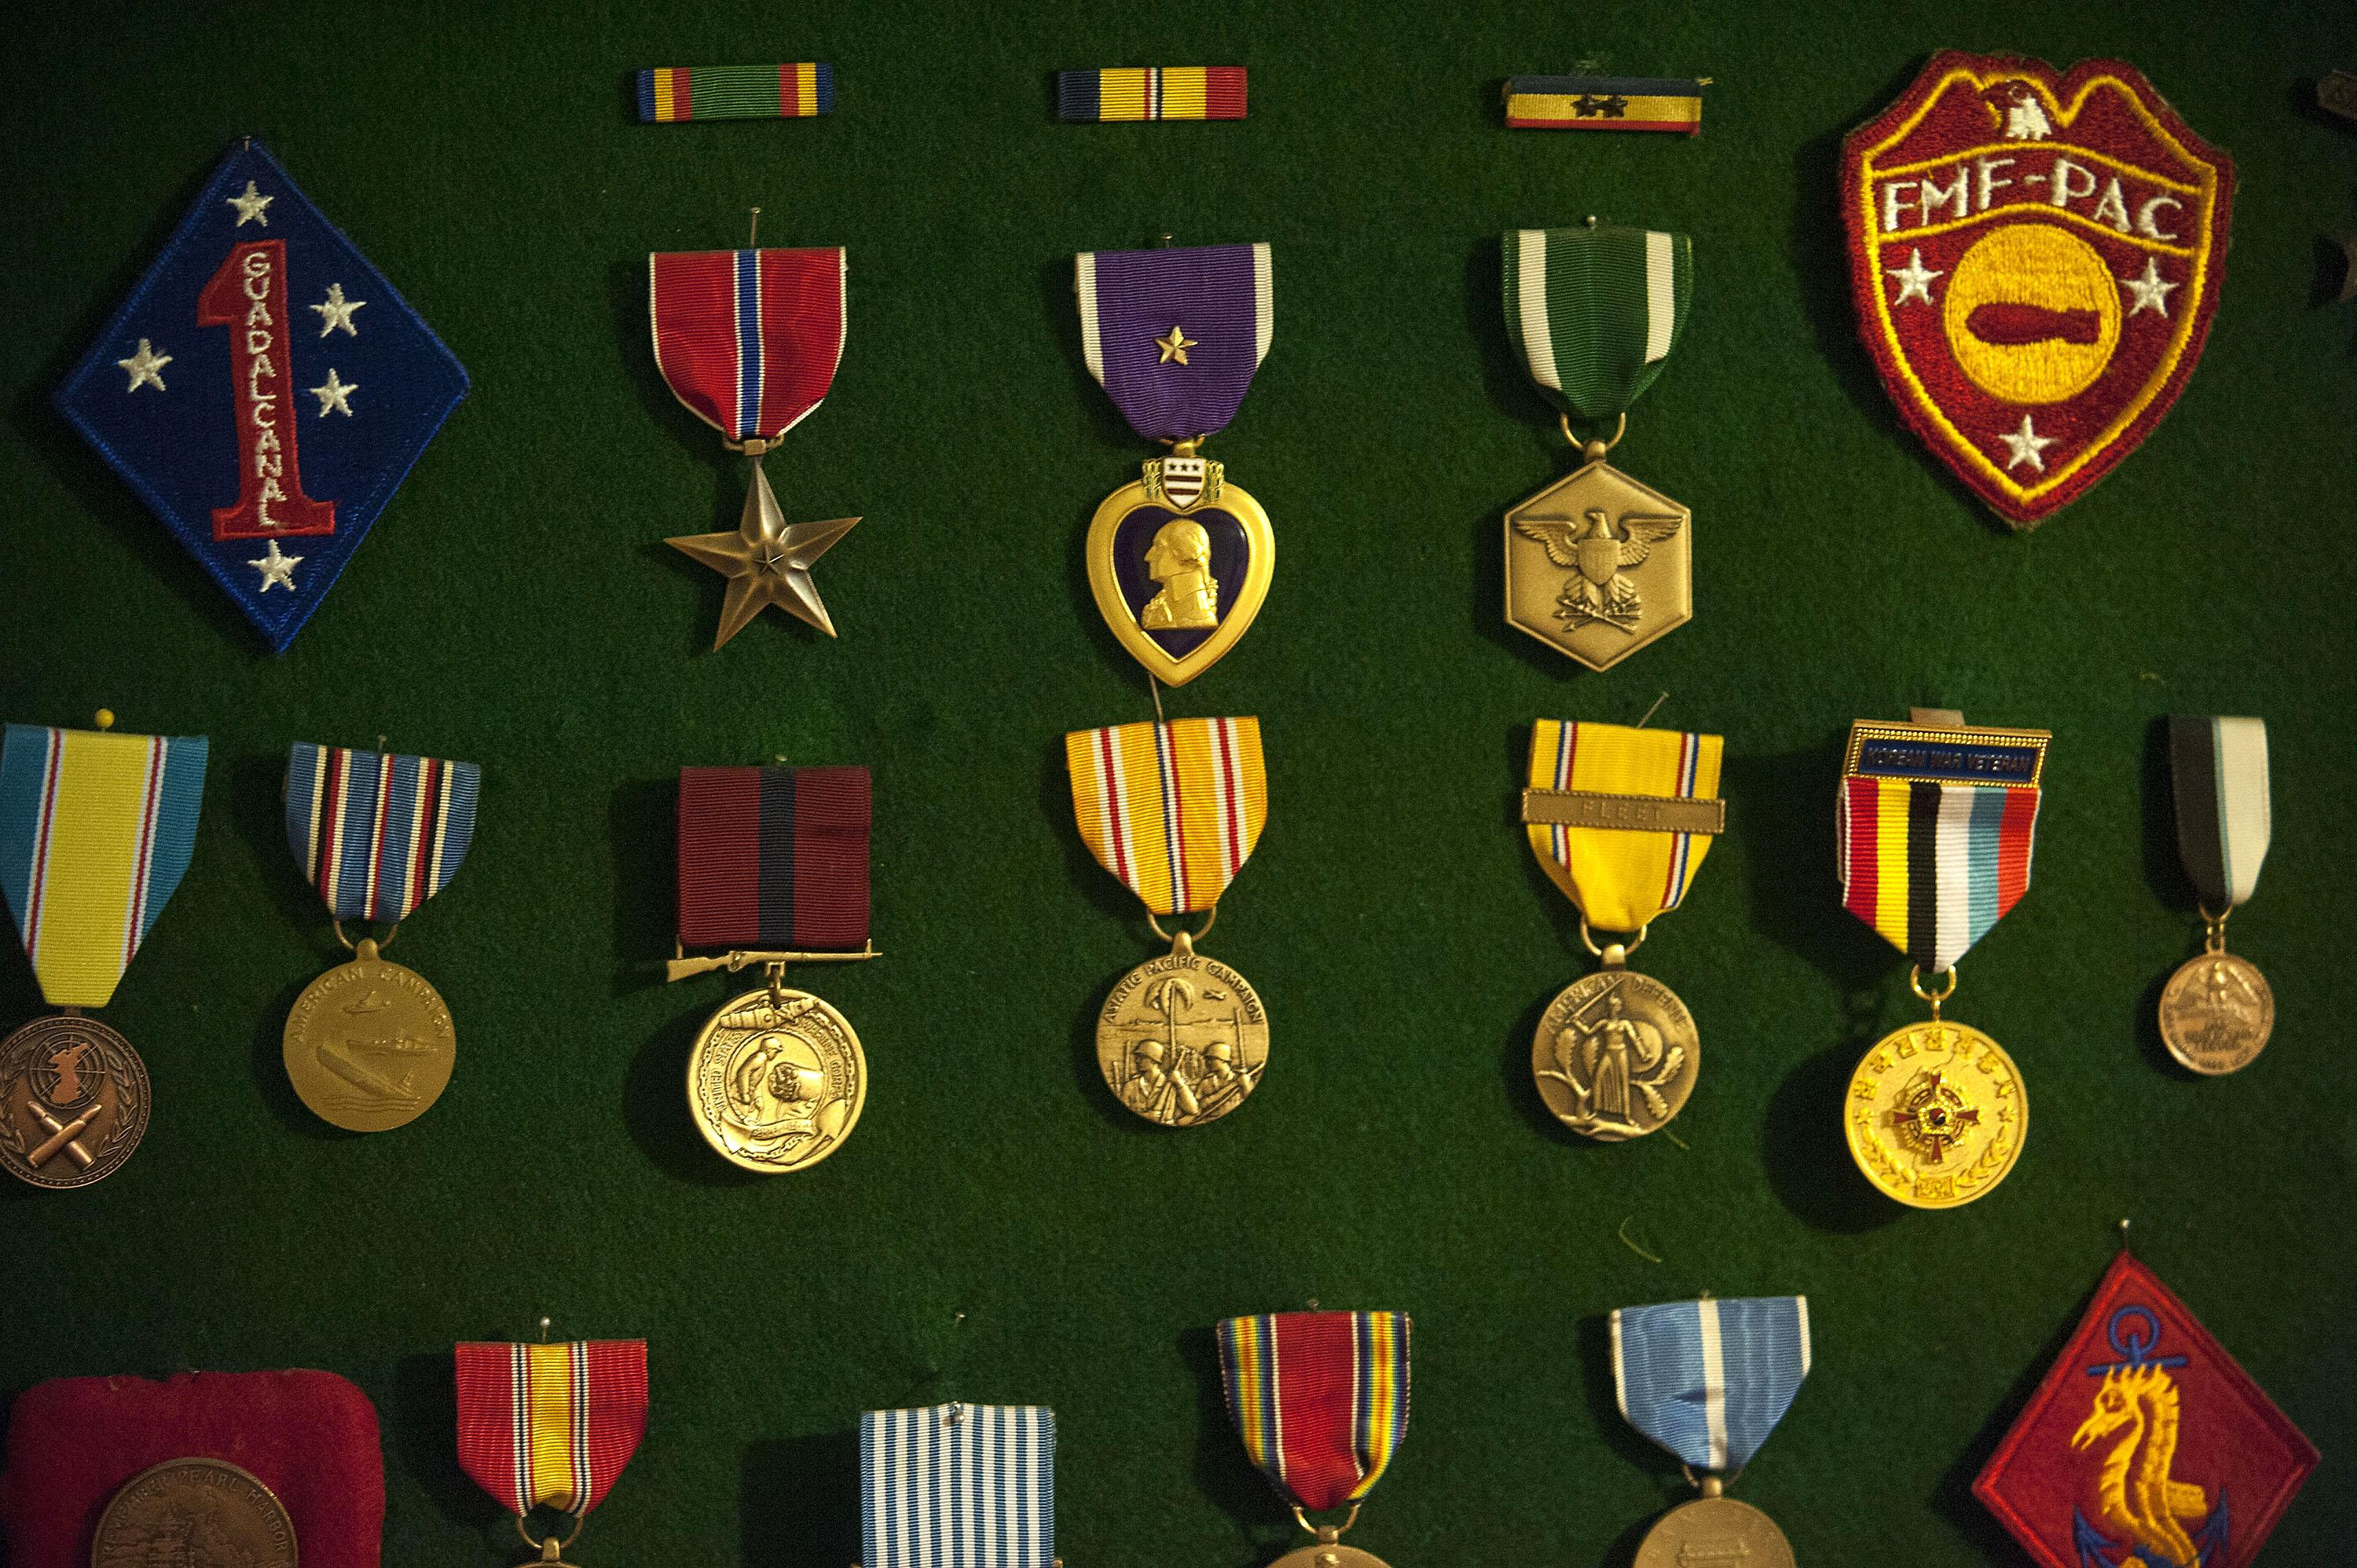 Pearl Harbor survivor Ray Garland's medals are on display in the basement of his home in Coeur d'Alene on July 8, 2016. (Kathy Plonka / The Spokesman-Review)